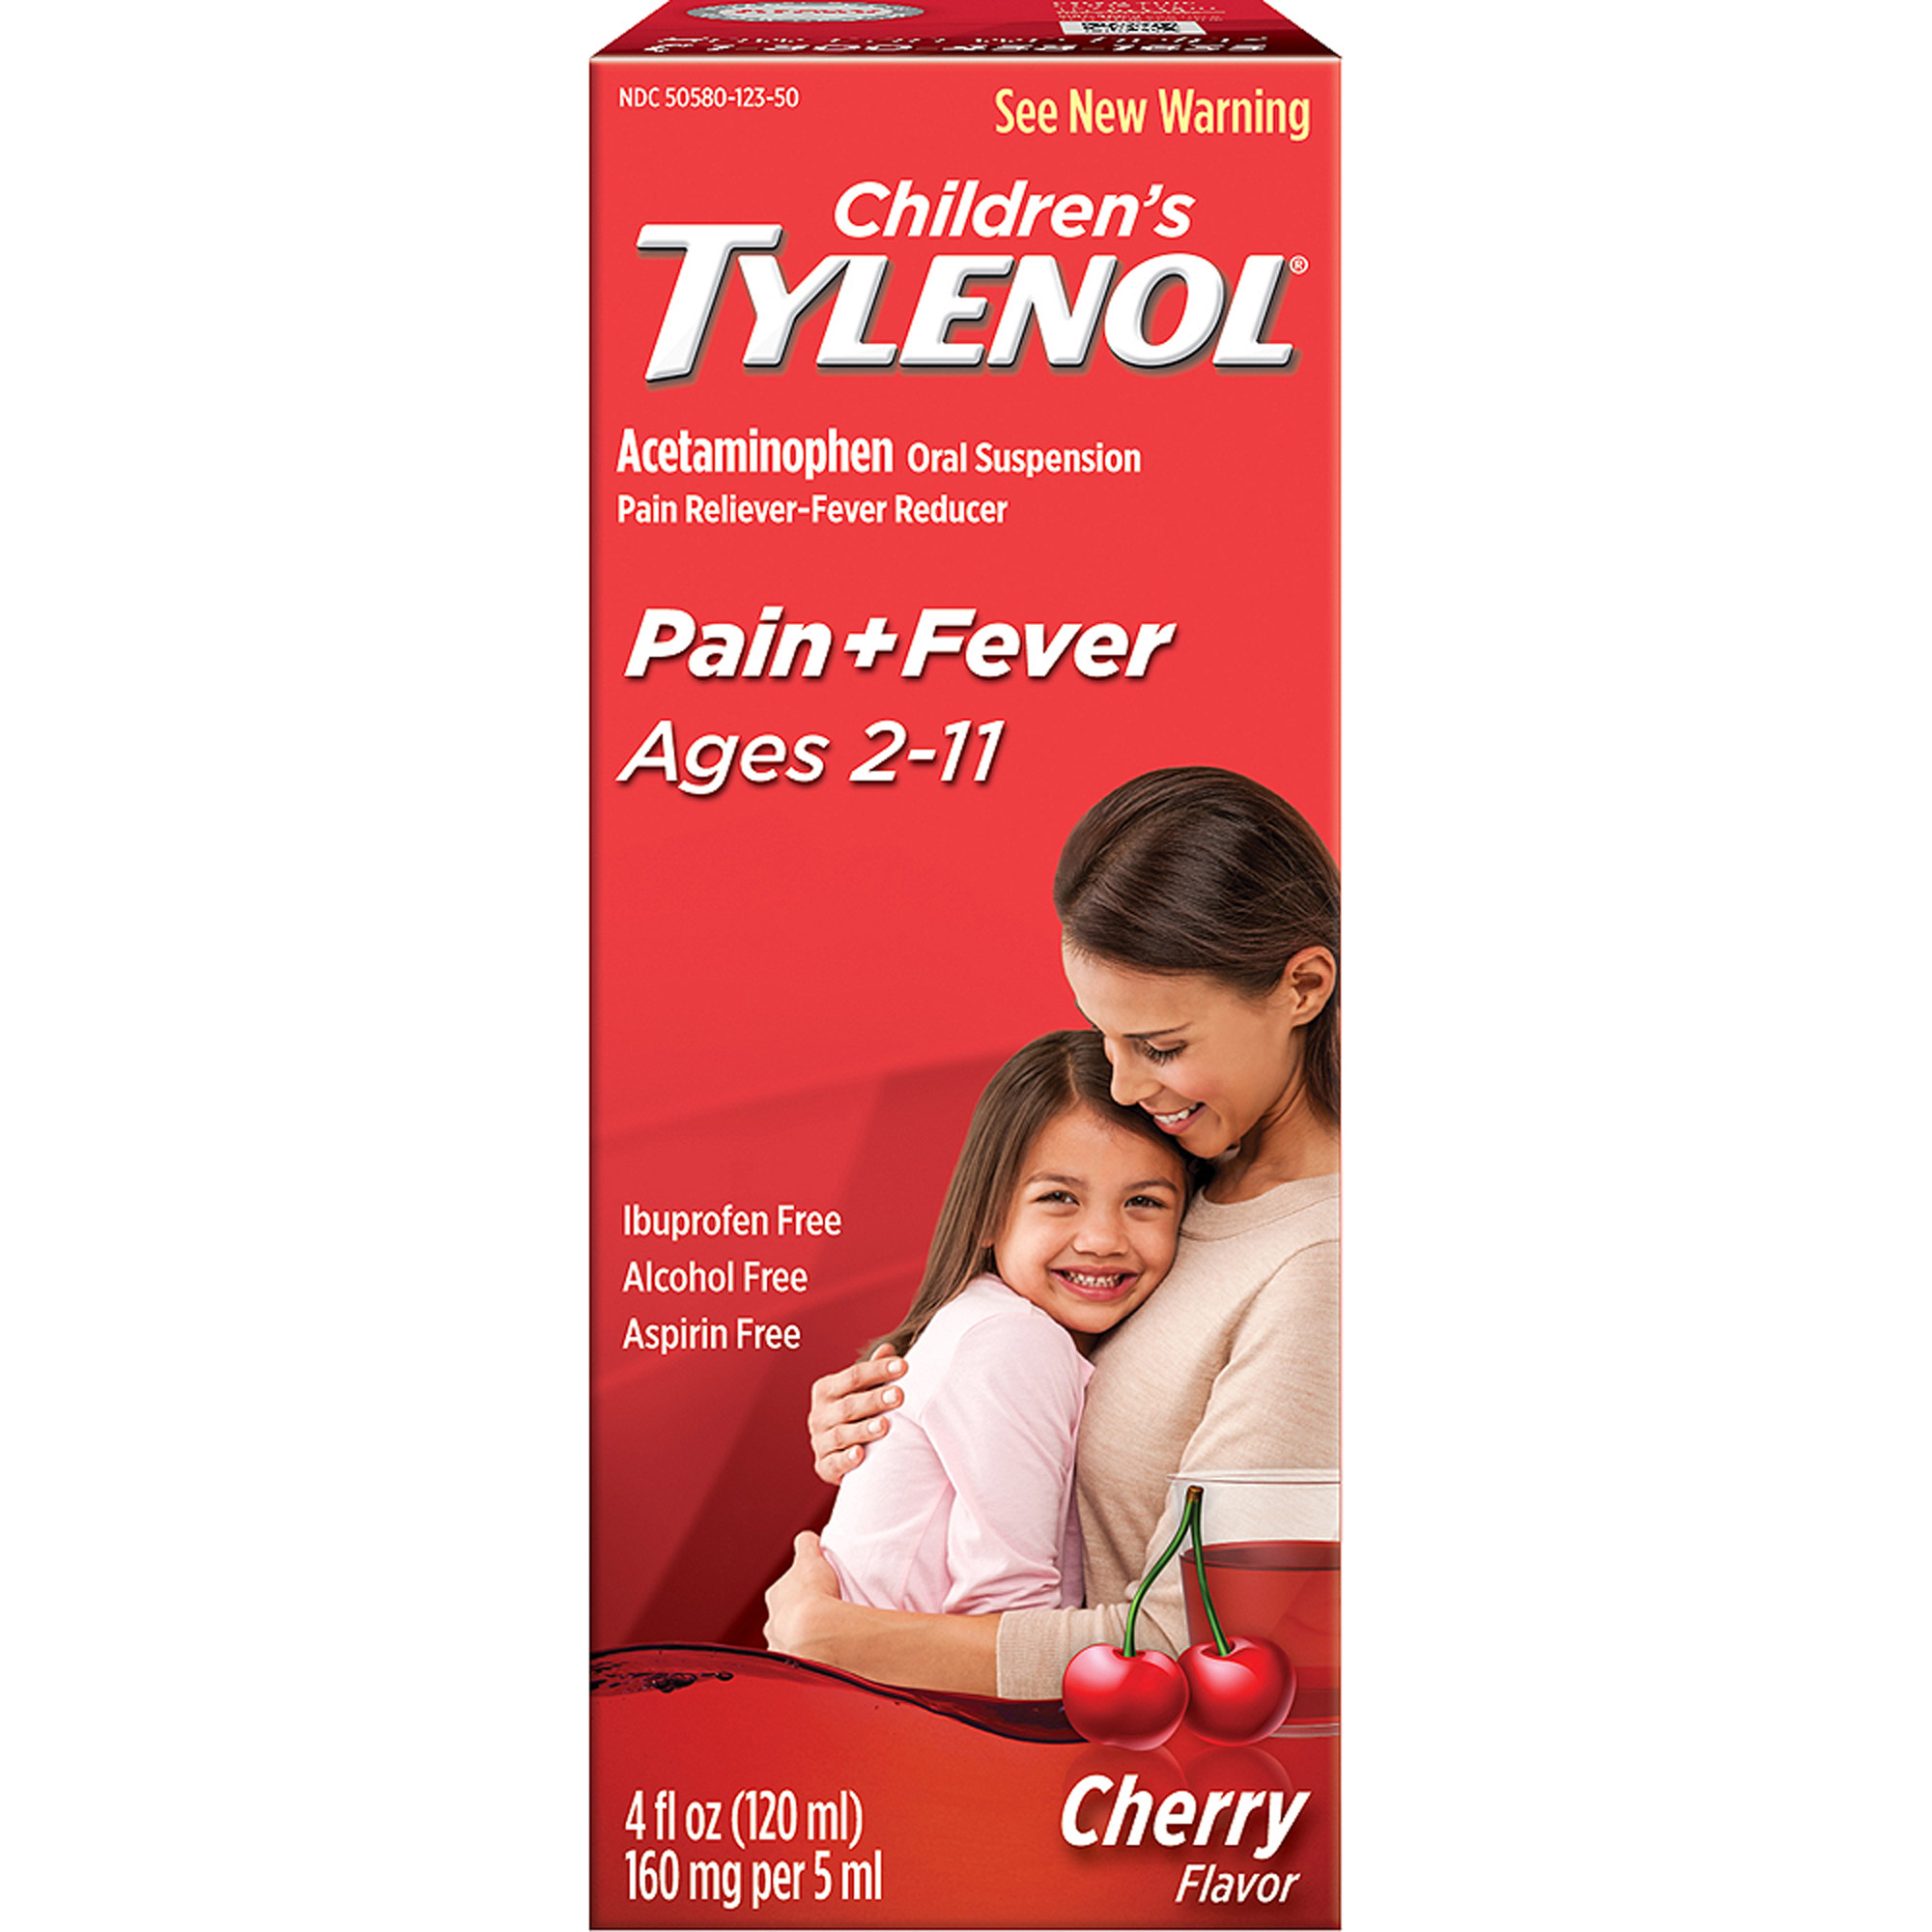 Children's Tylenol: Cherry Blast Flavor Oral Suspension - Ages 2-11, 4 oz